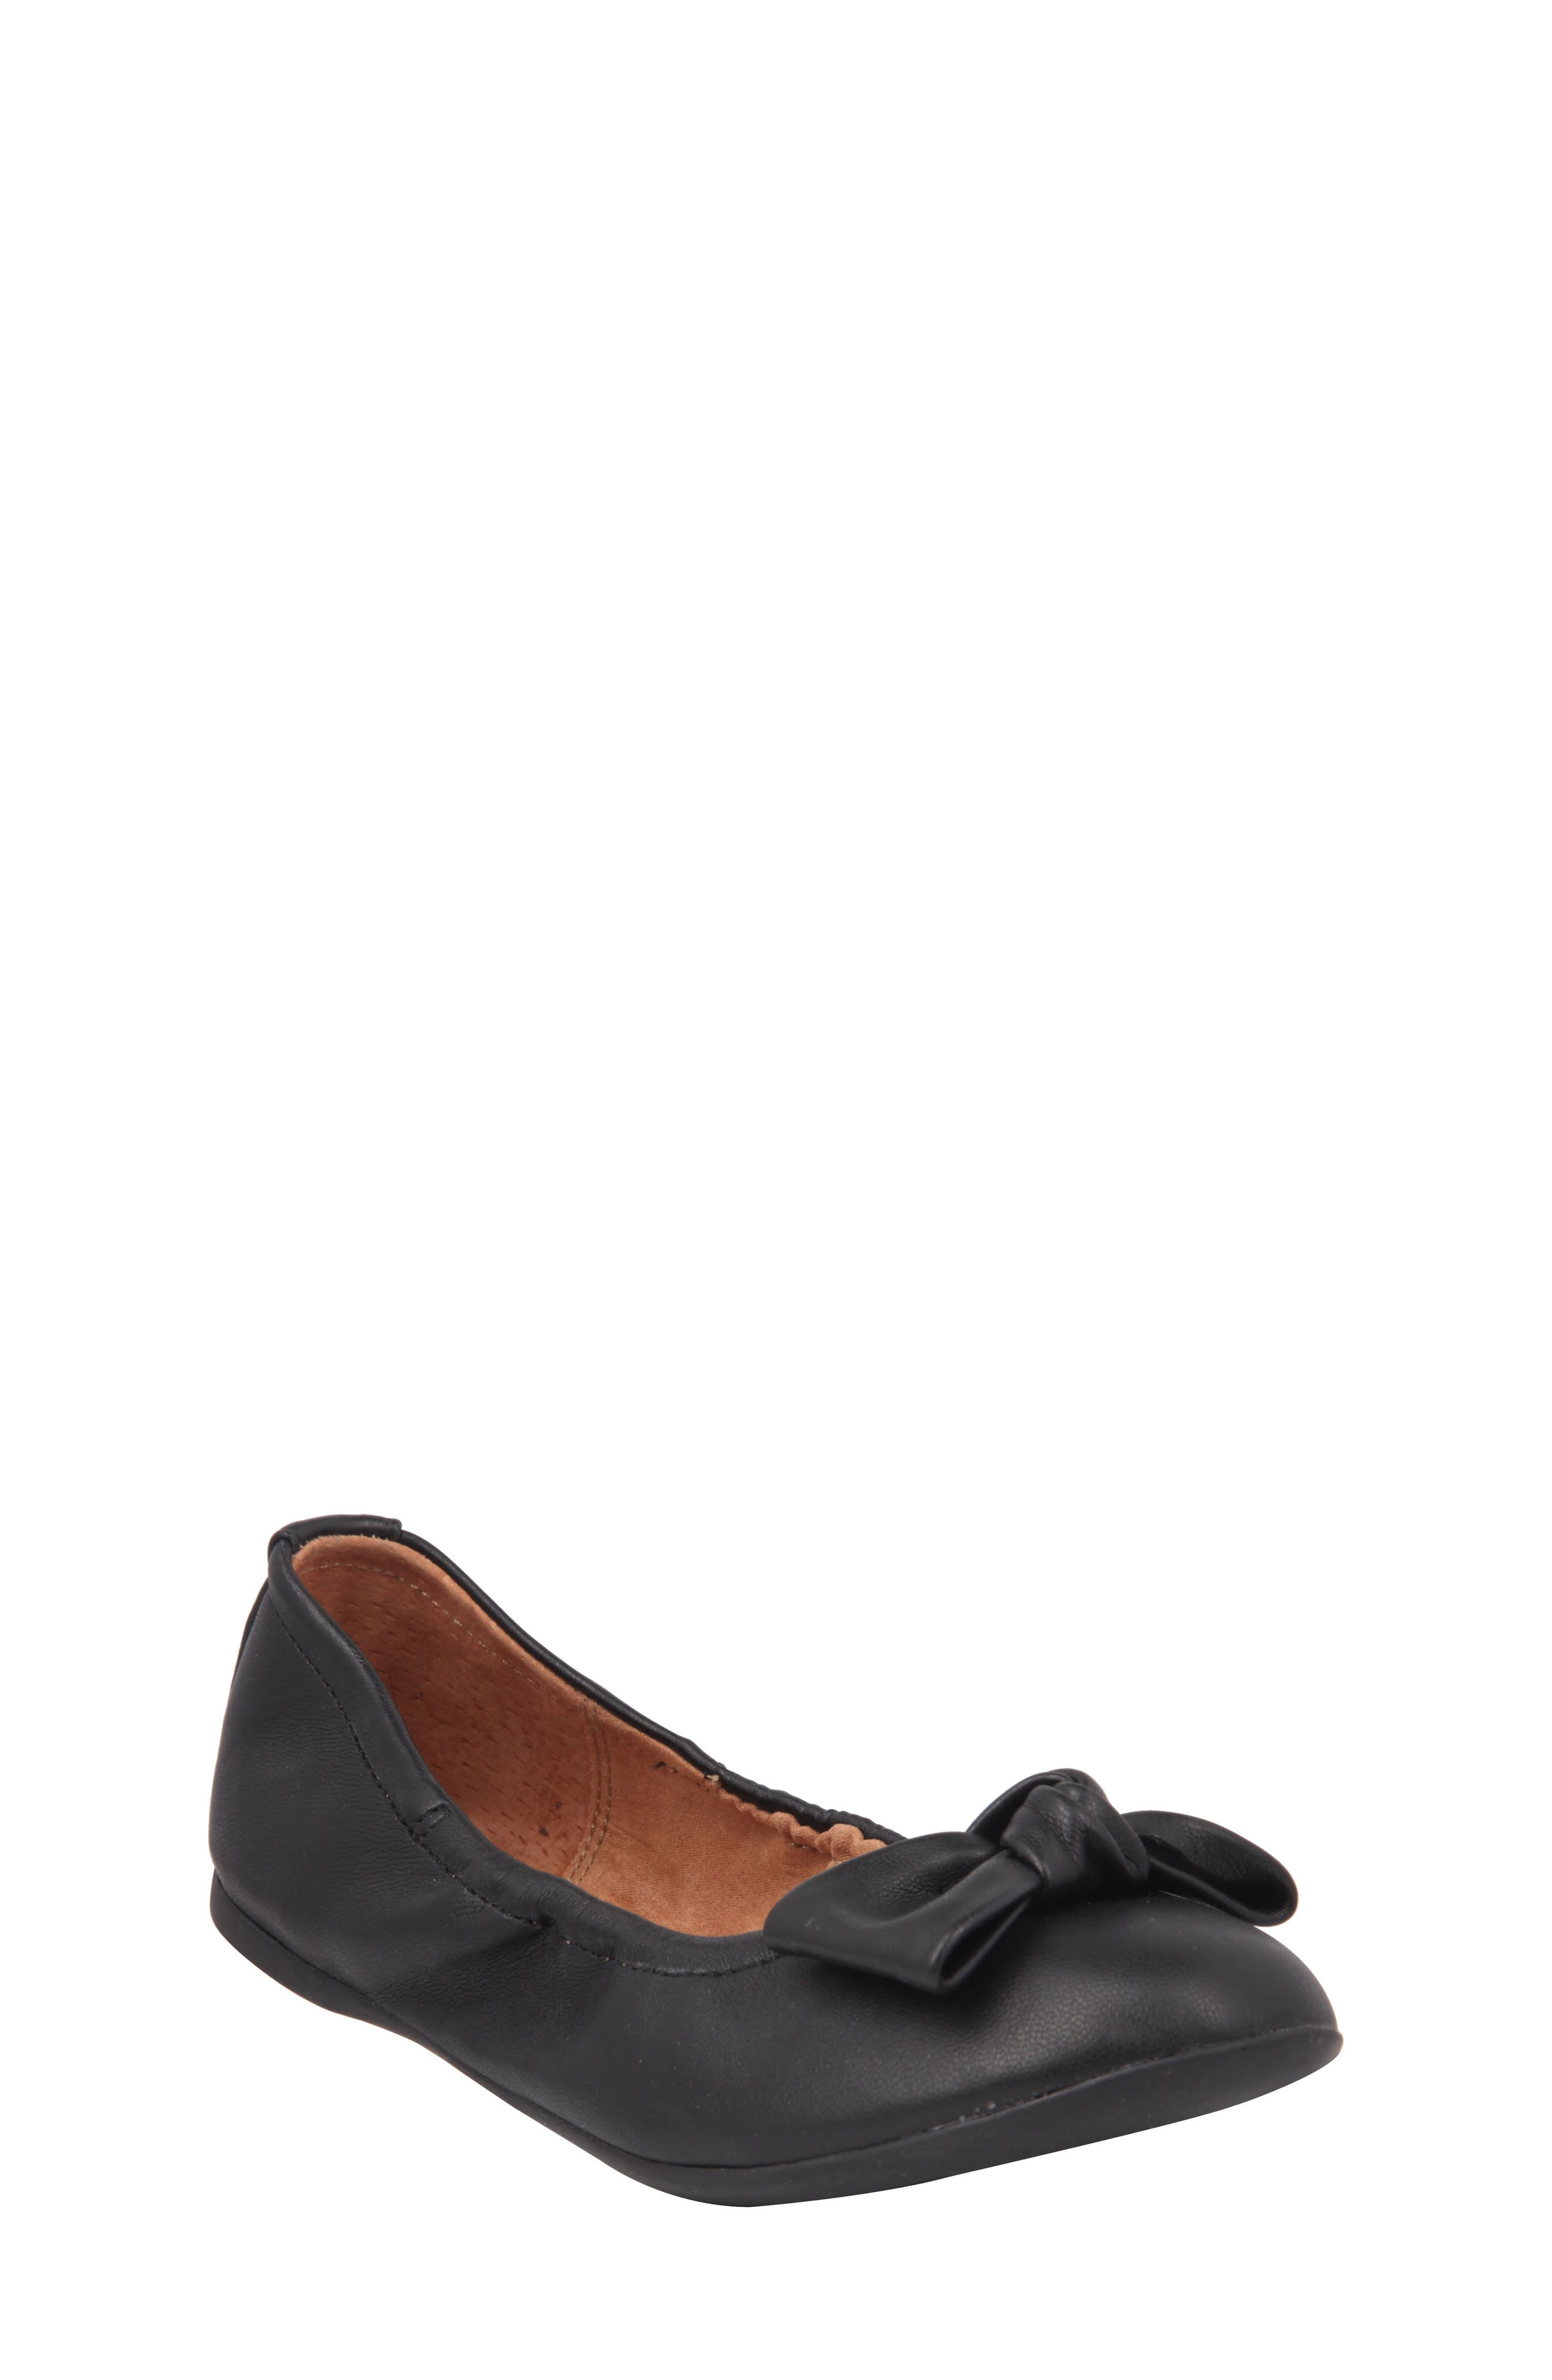 Karla Bow Ballet Flat,                         Main,                         color, Black Smooth Leather